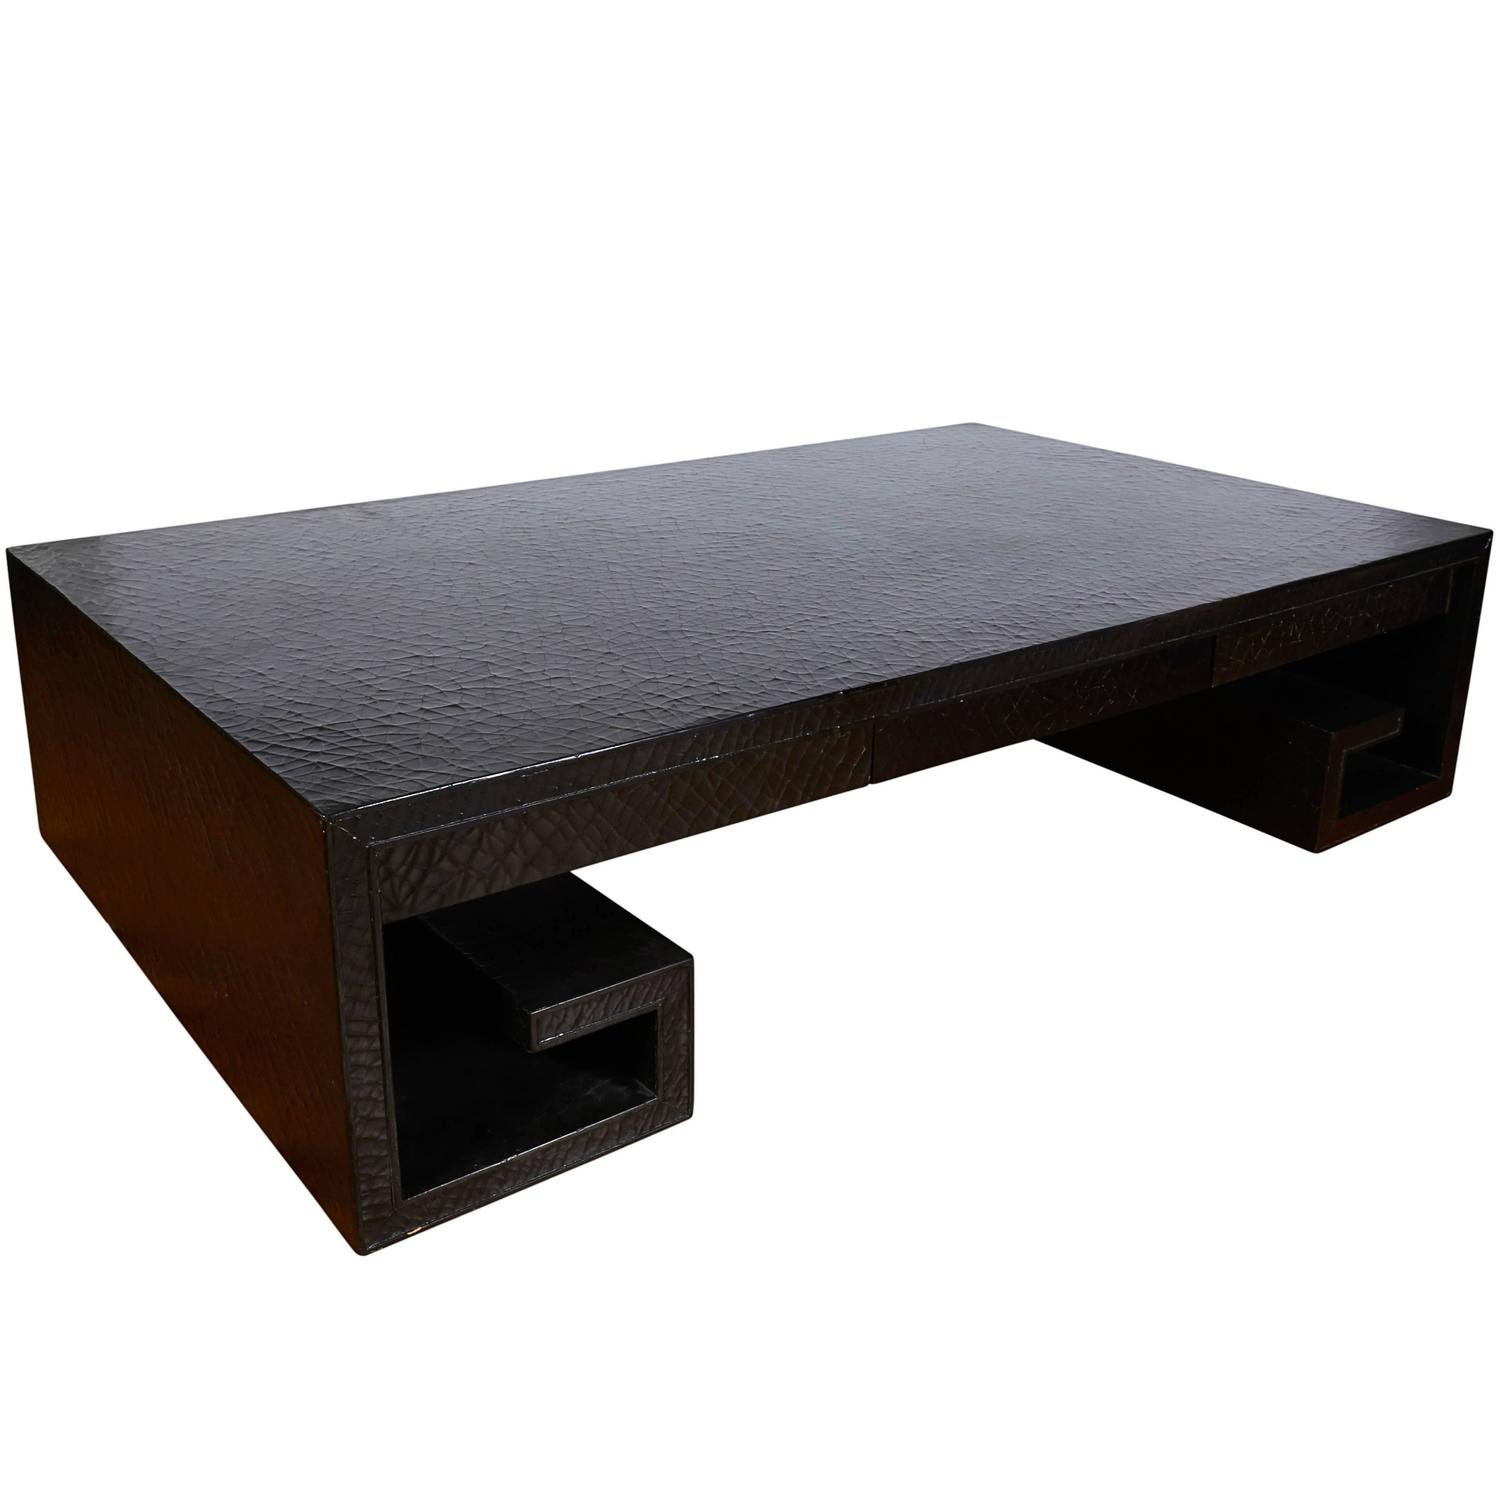 Thomas Pheasant Black Crackle Lacquer Scroll Coffee Table For Baker. Greek  Key Coffee Table